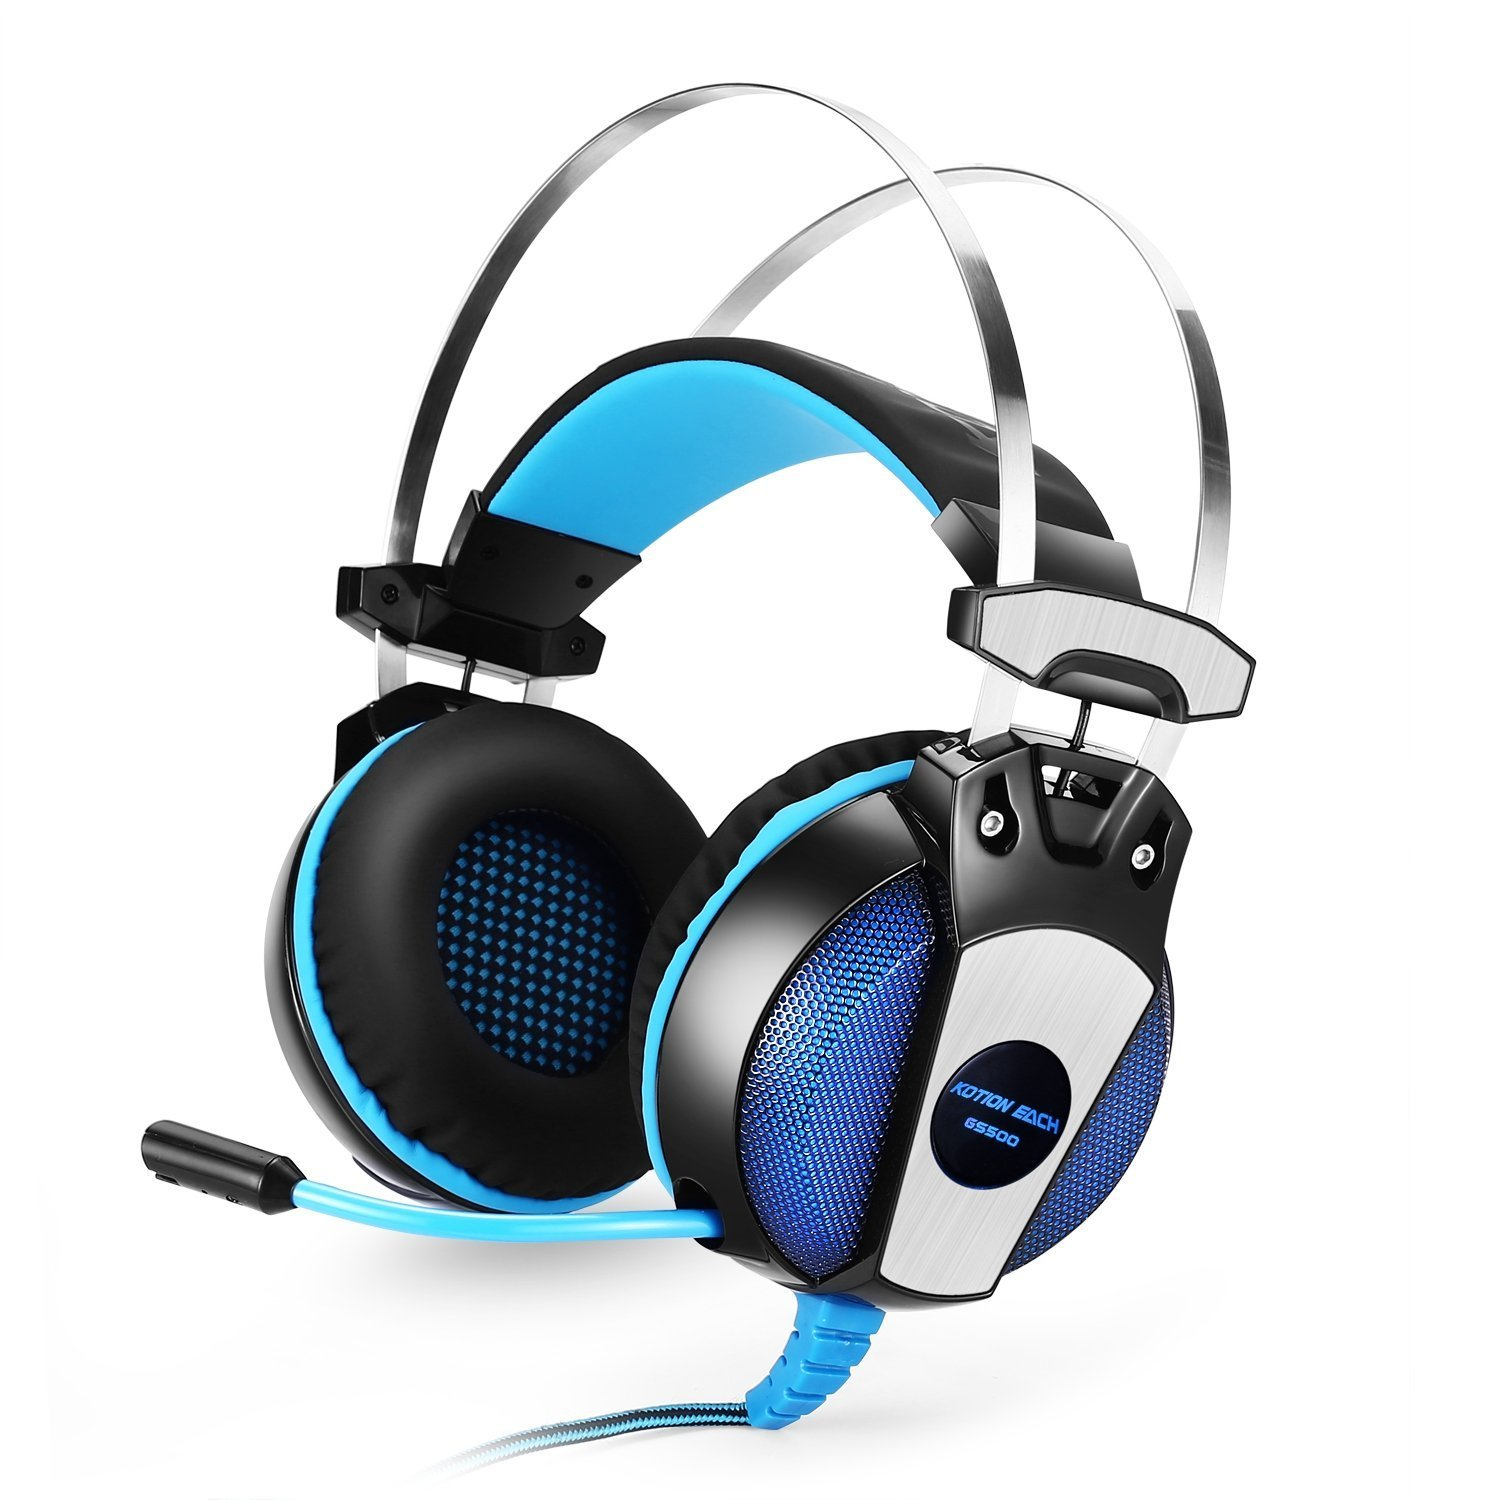 Ps4 earbuds with mic cheap - apple earbuds wireless with microphone